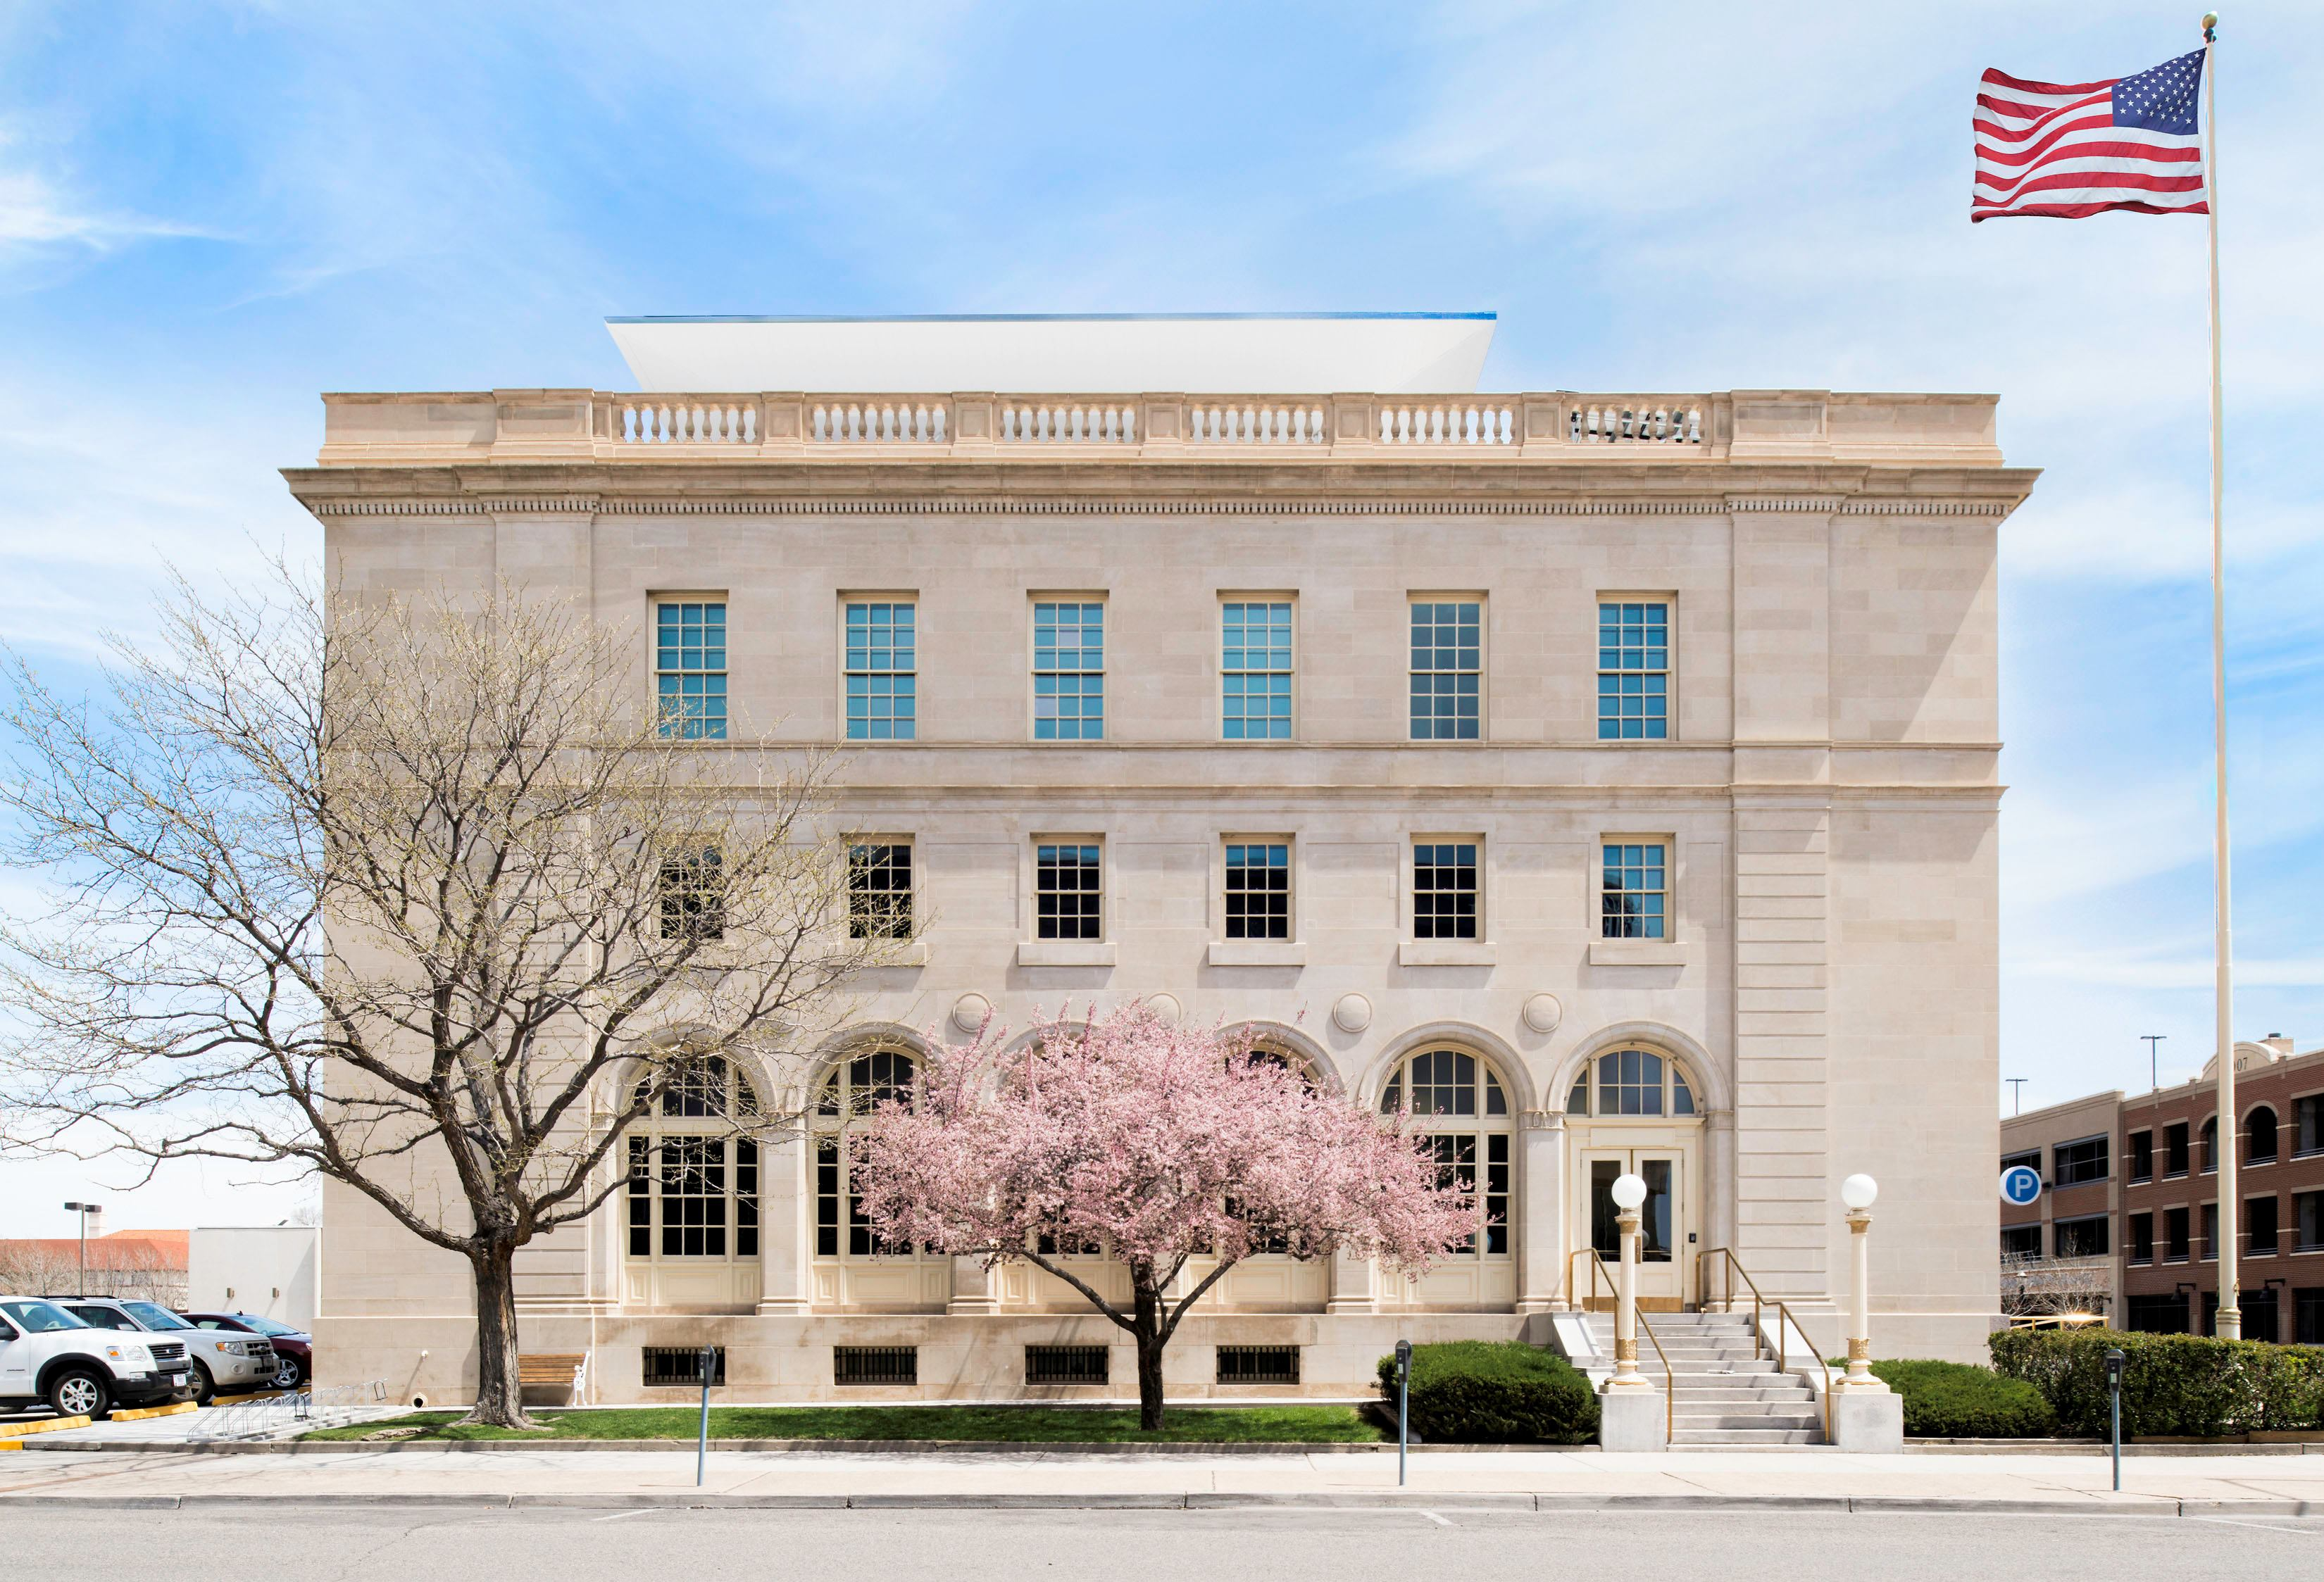 Federal Building Services : Aia cote top ten winner wayne n aspinall federal